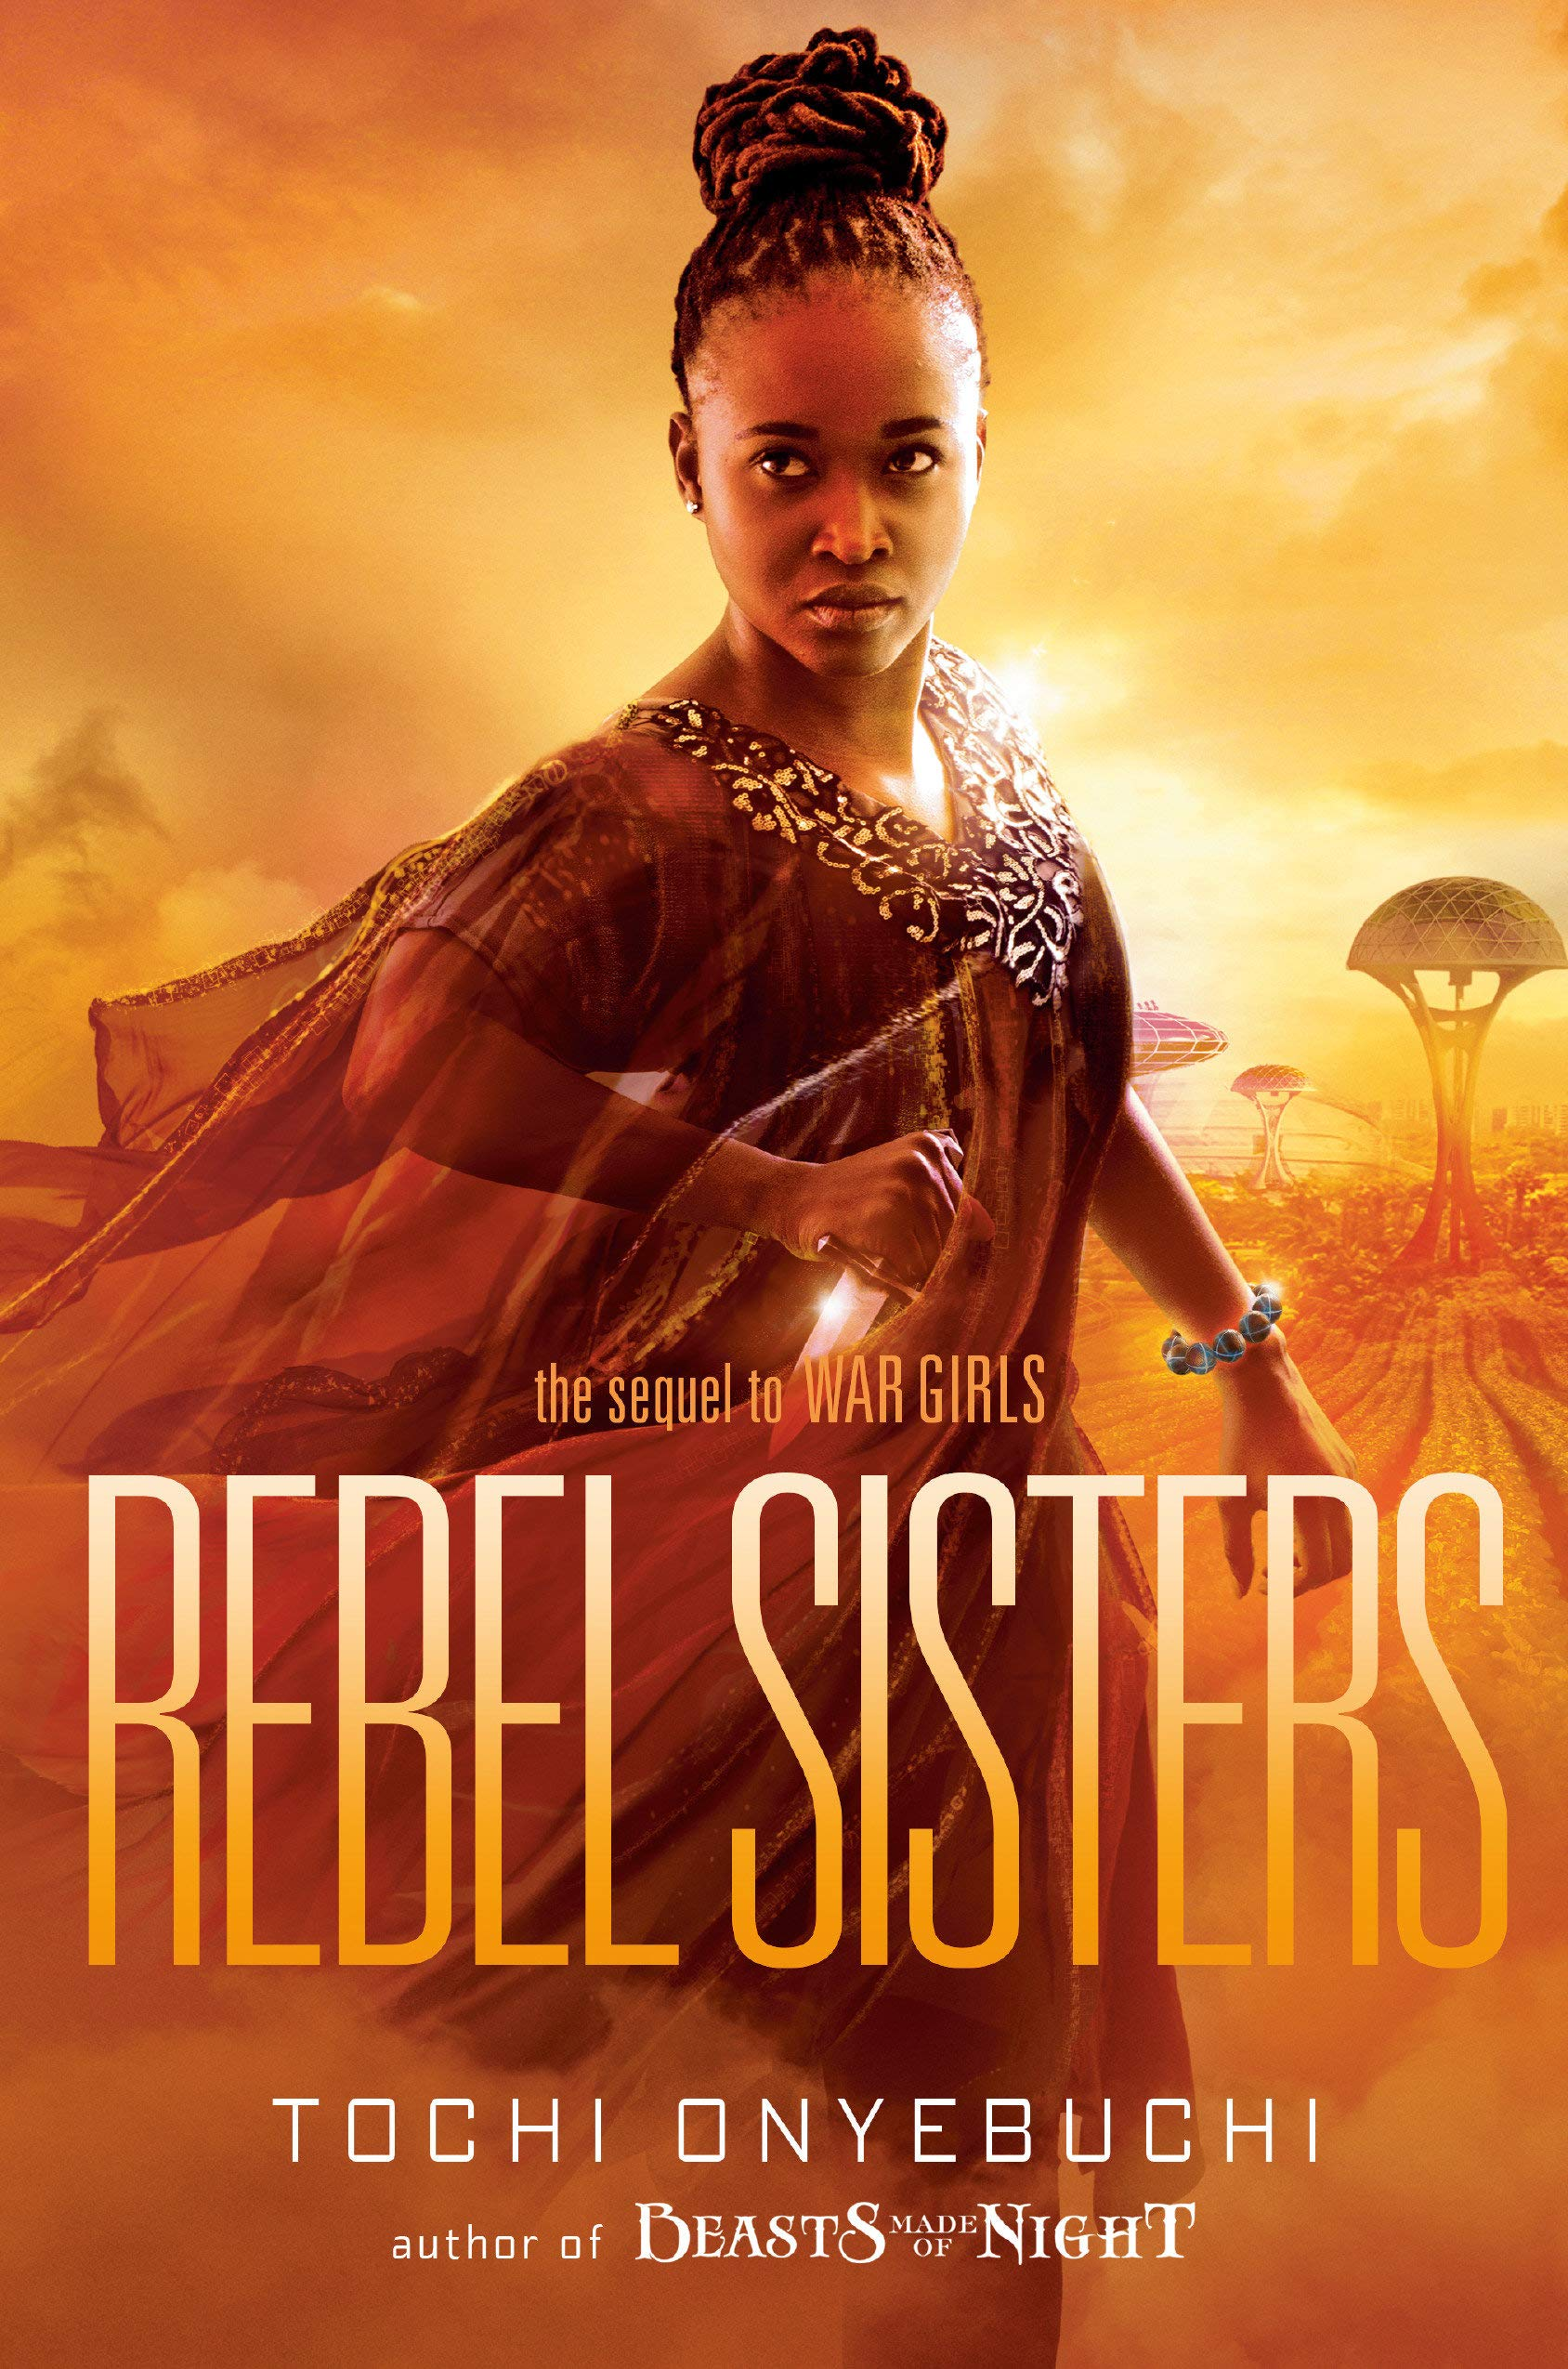 Image result for rebel sisters amazon